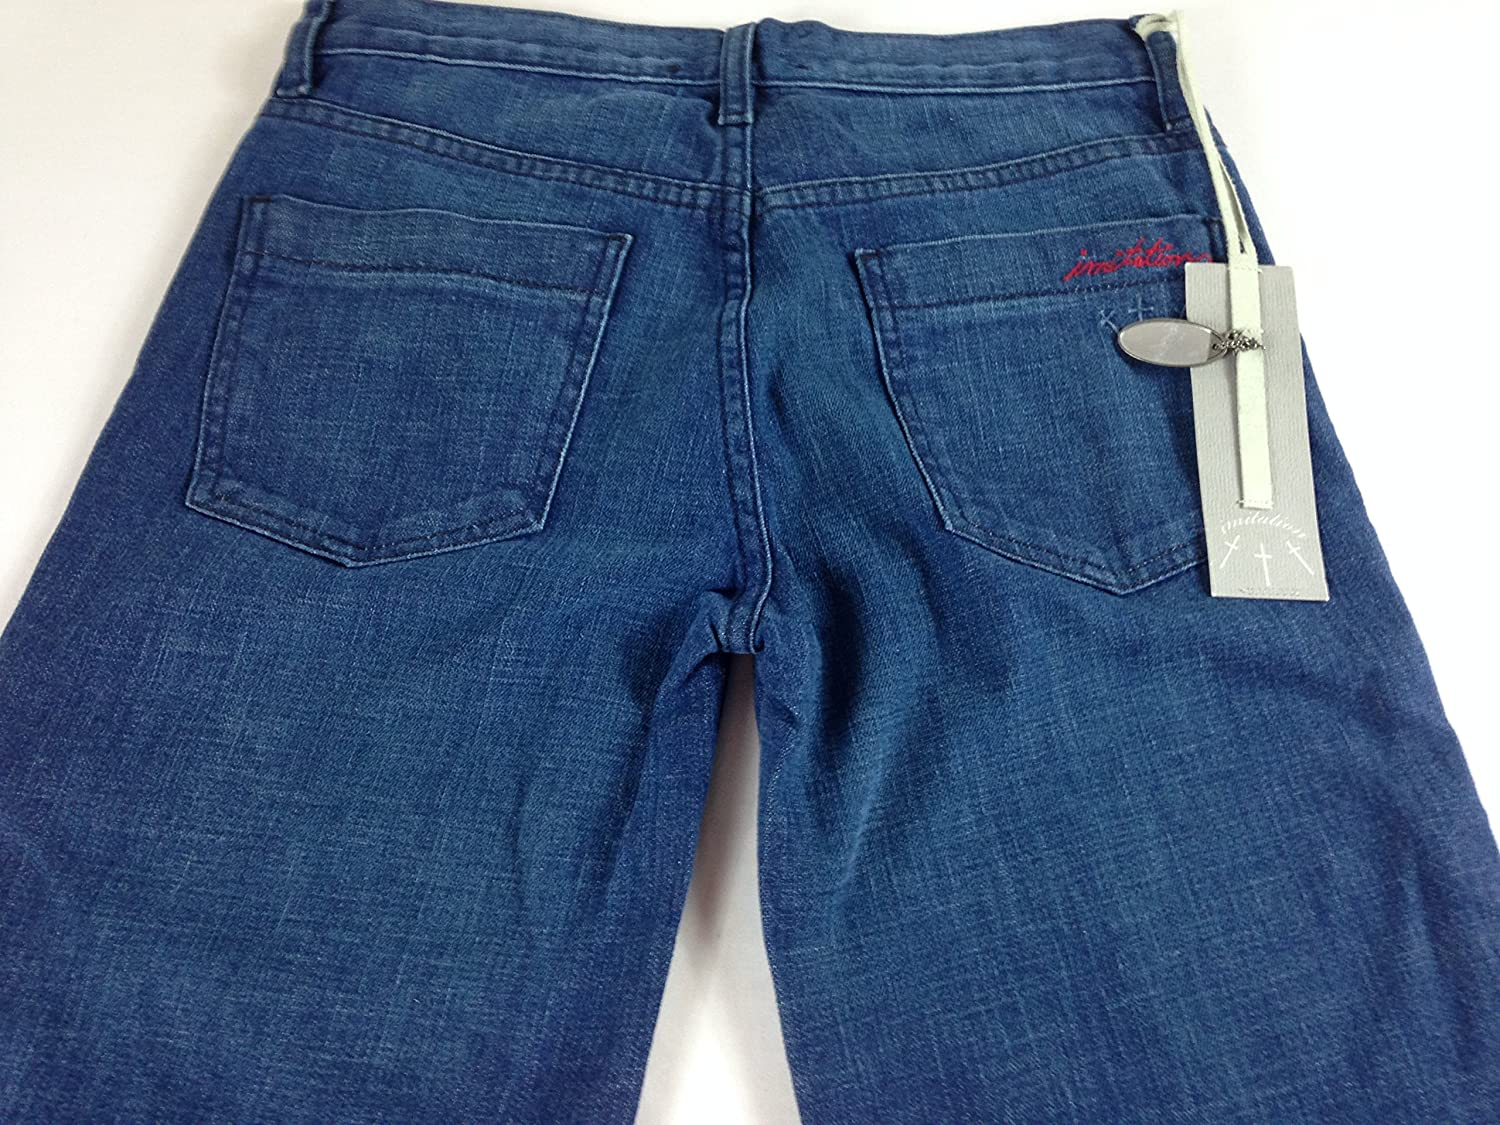 Imitation Of Christ Jeans Womens 27 28 Tall Long Dark Hunger Project 31 x 34.5 Actual